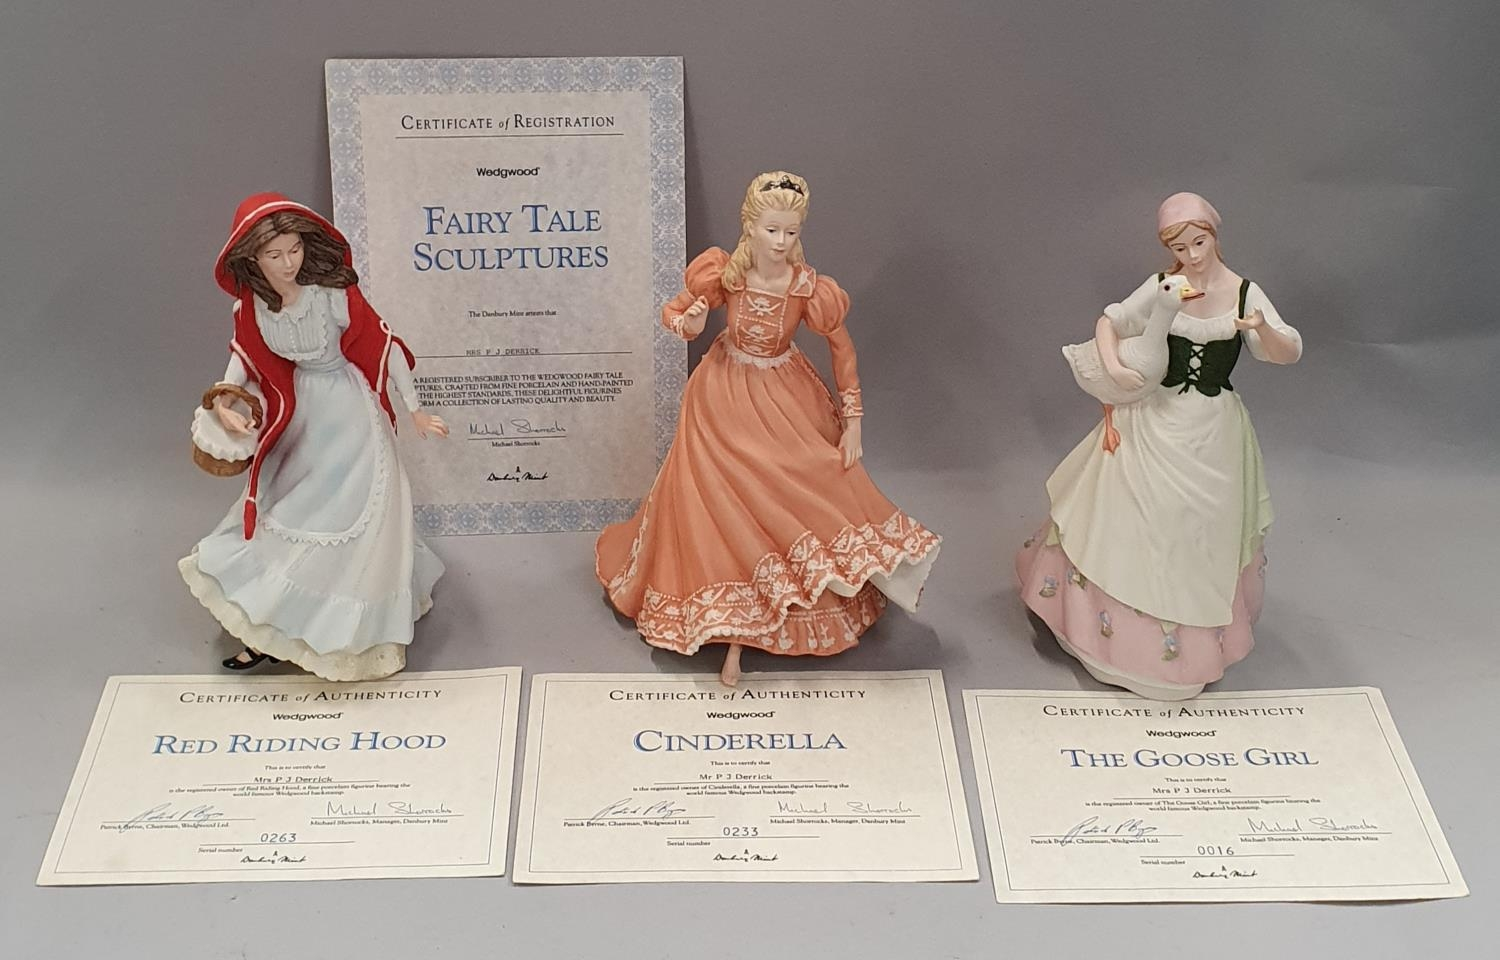 Wedgwood fairy tale figurines x 3 with certificates.